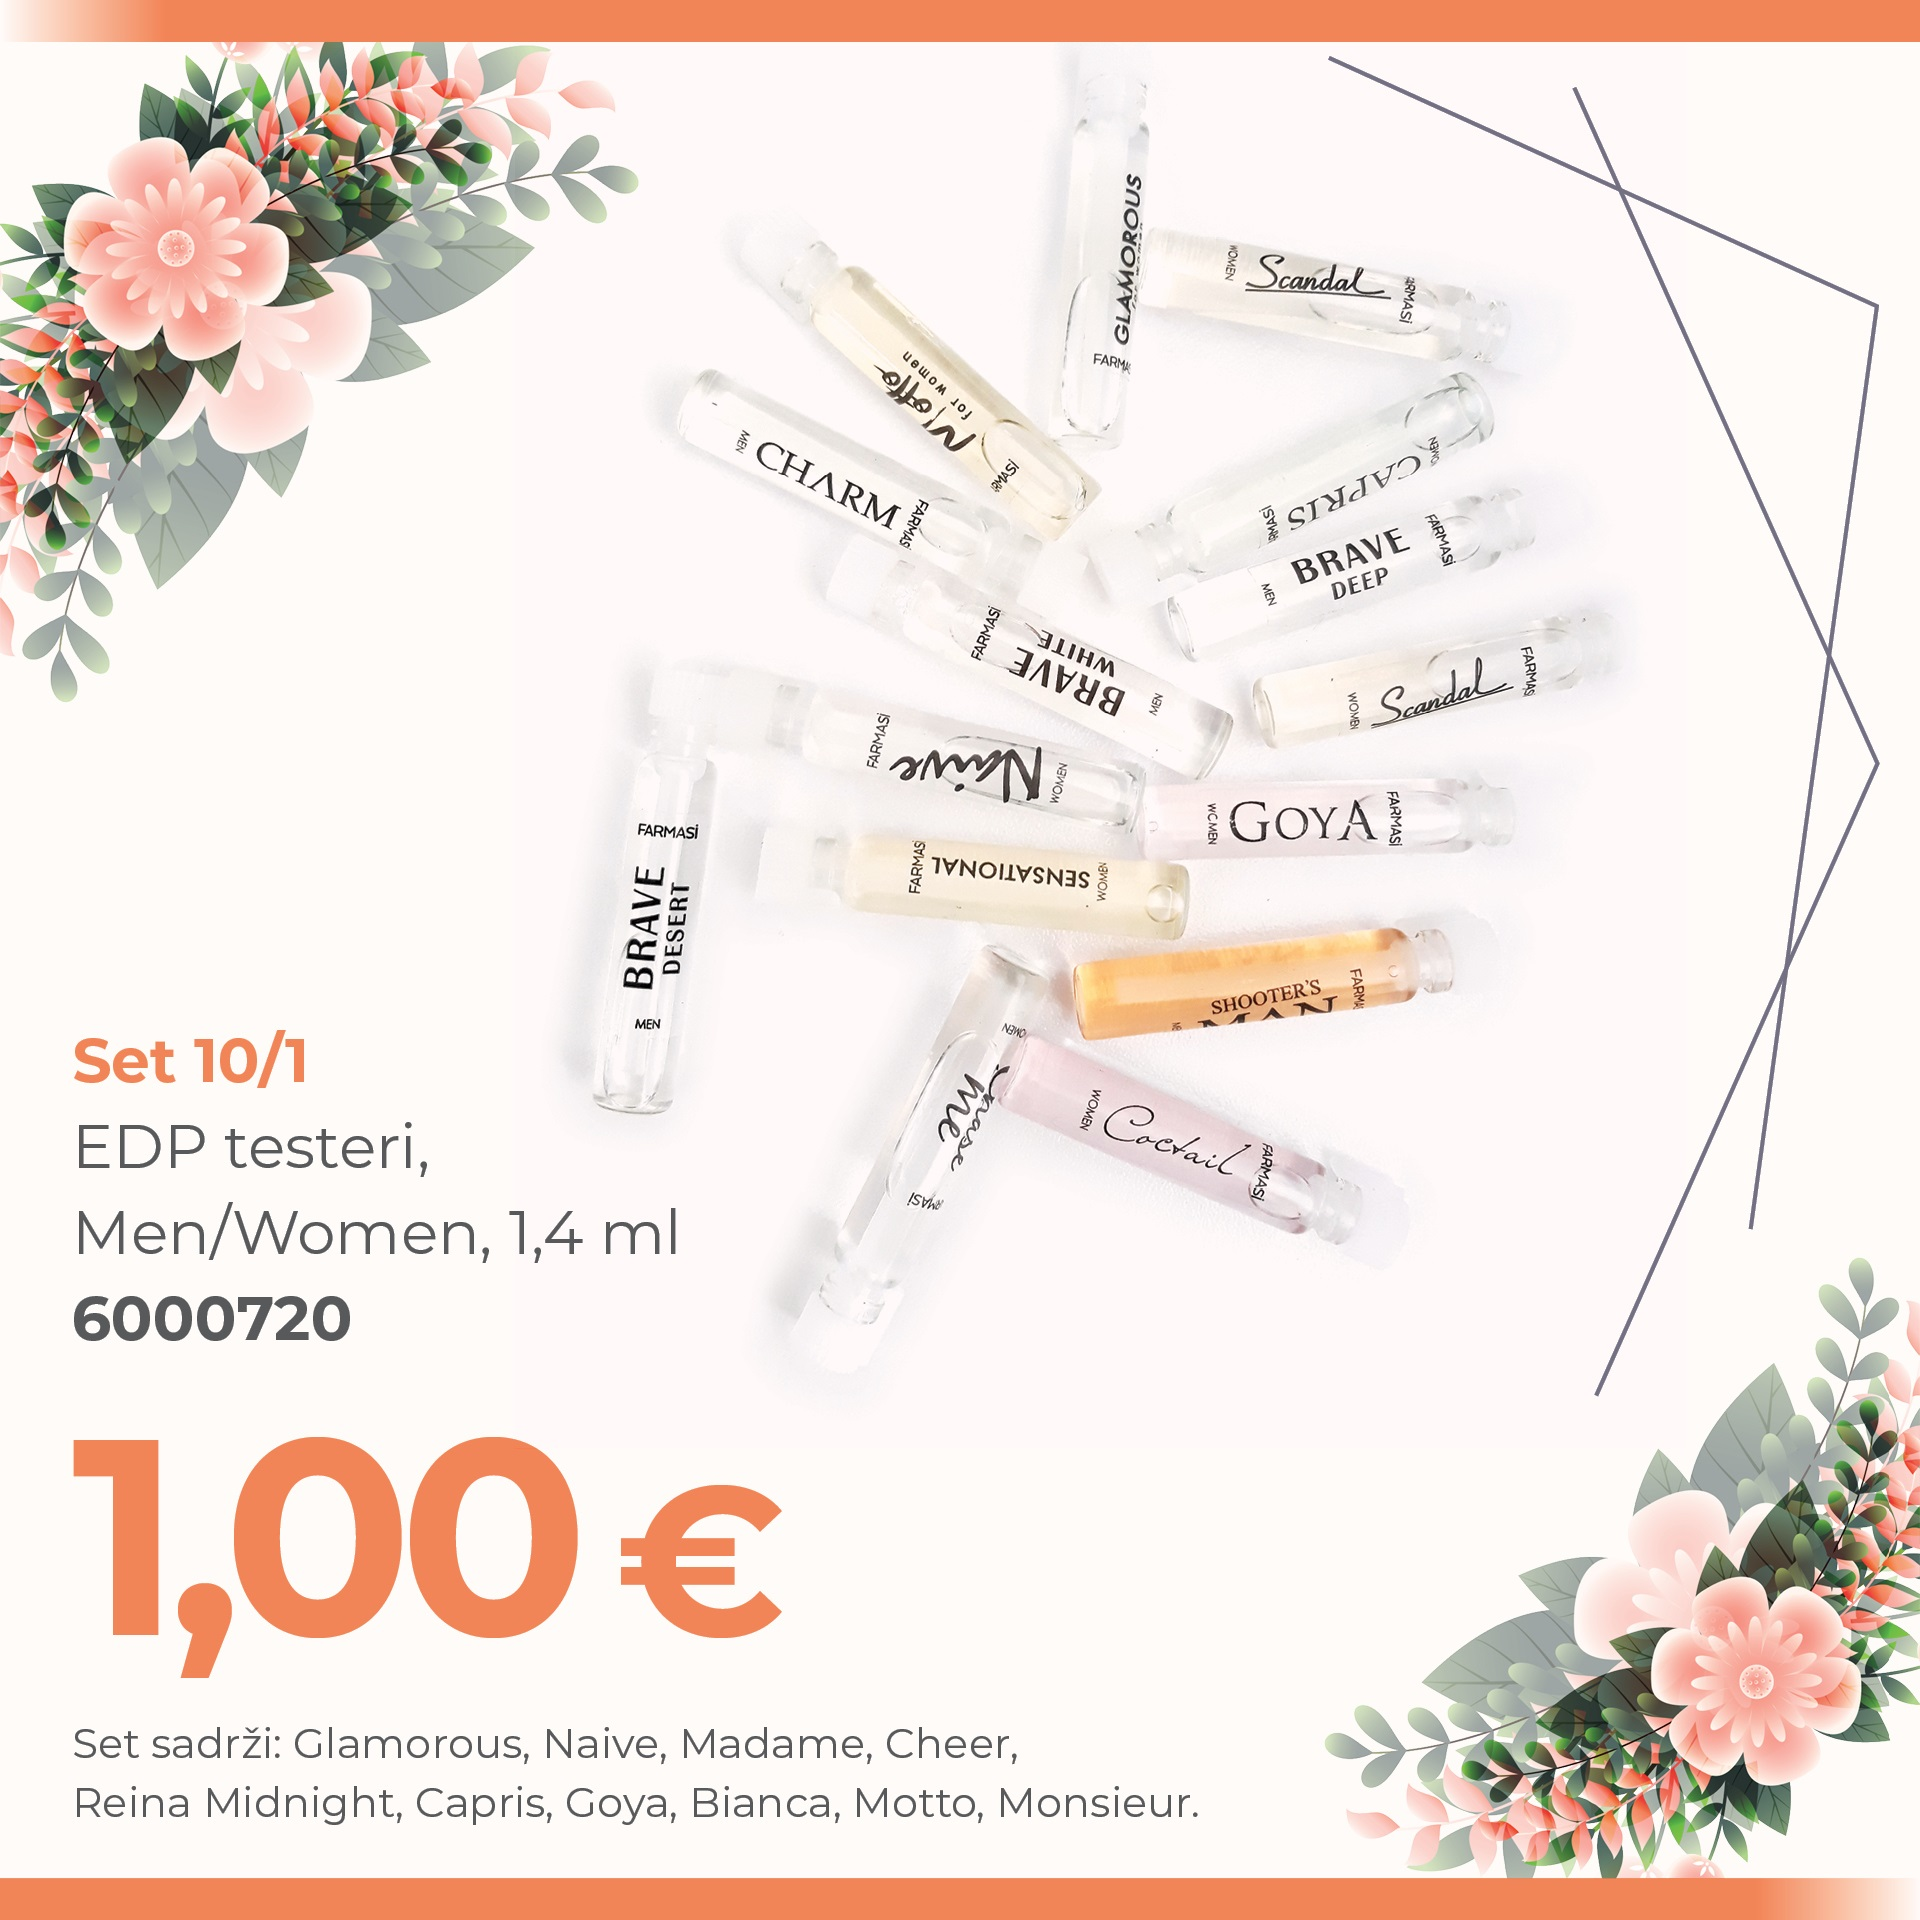 CG EDP TESTERI SET 10 1